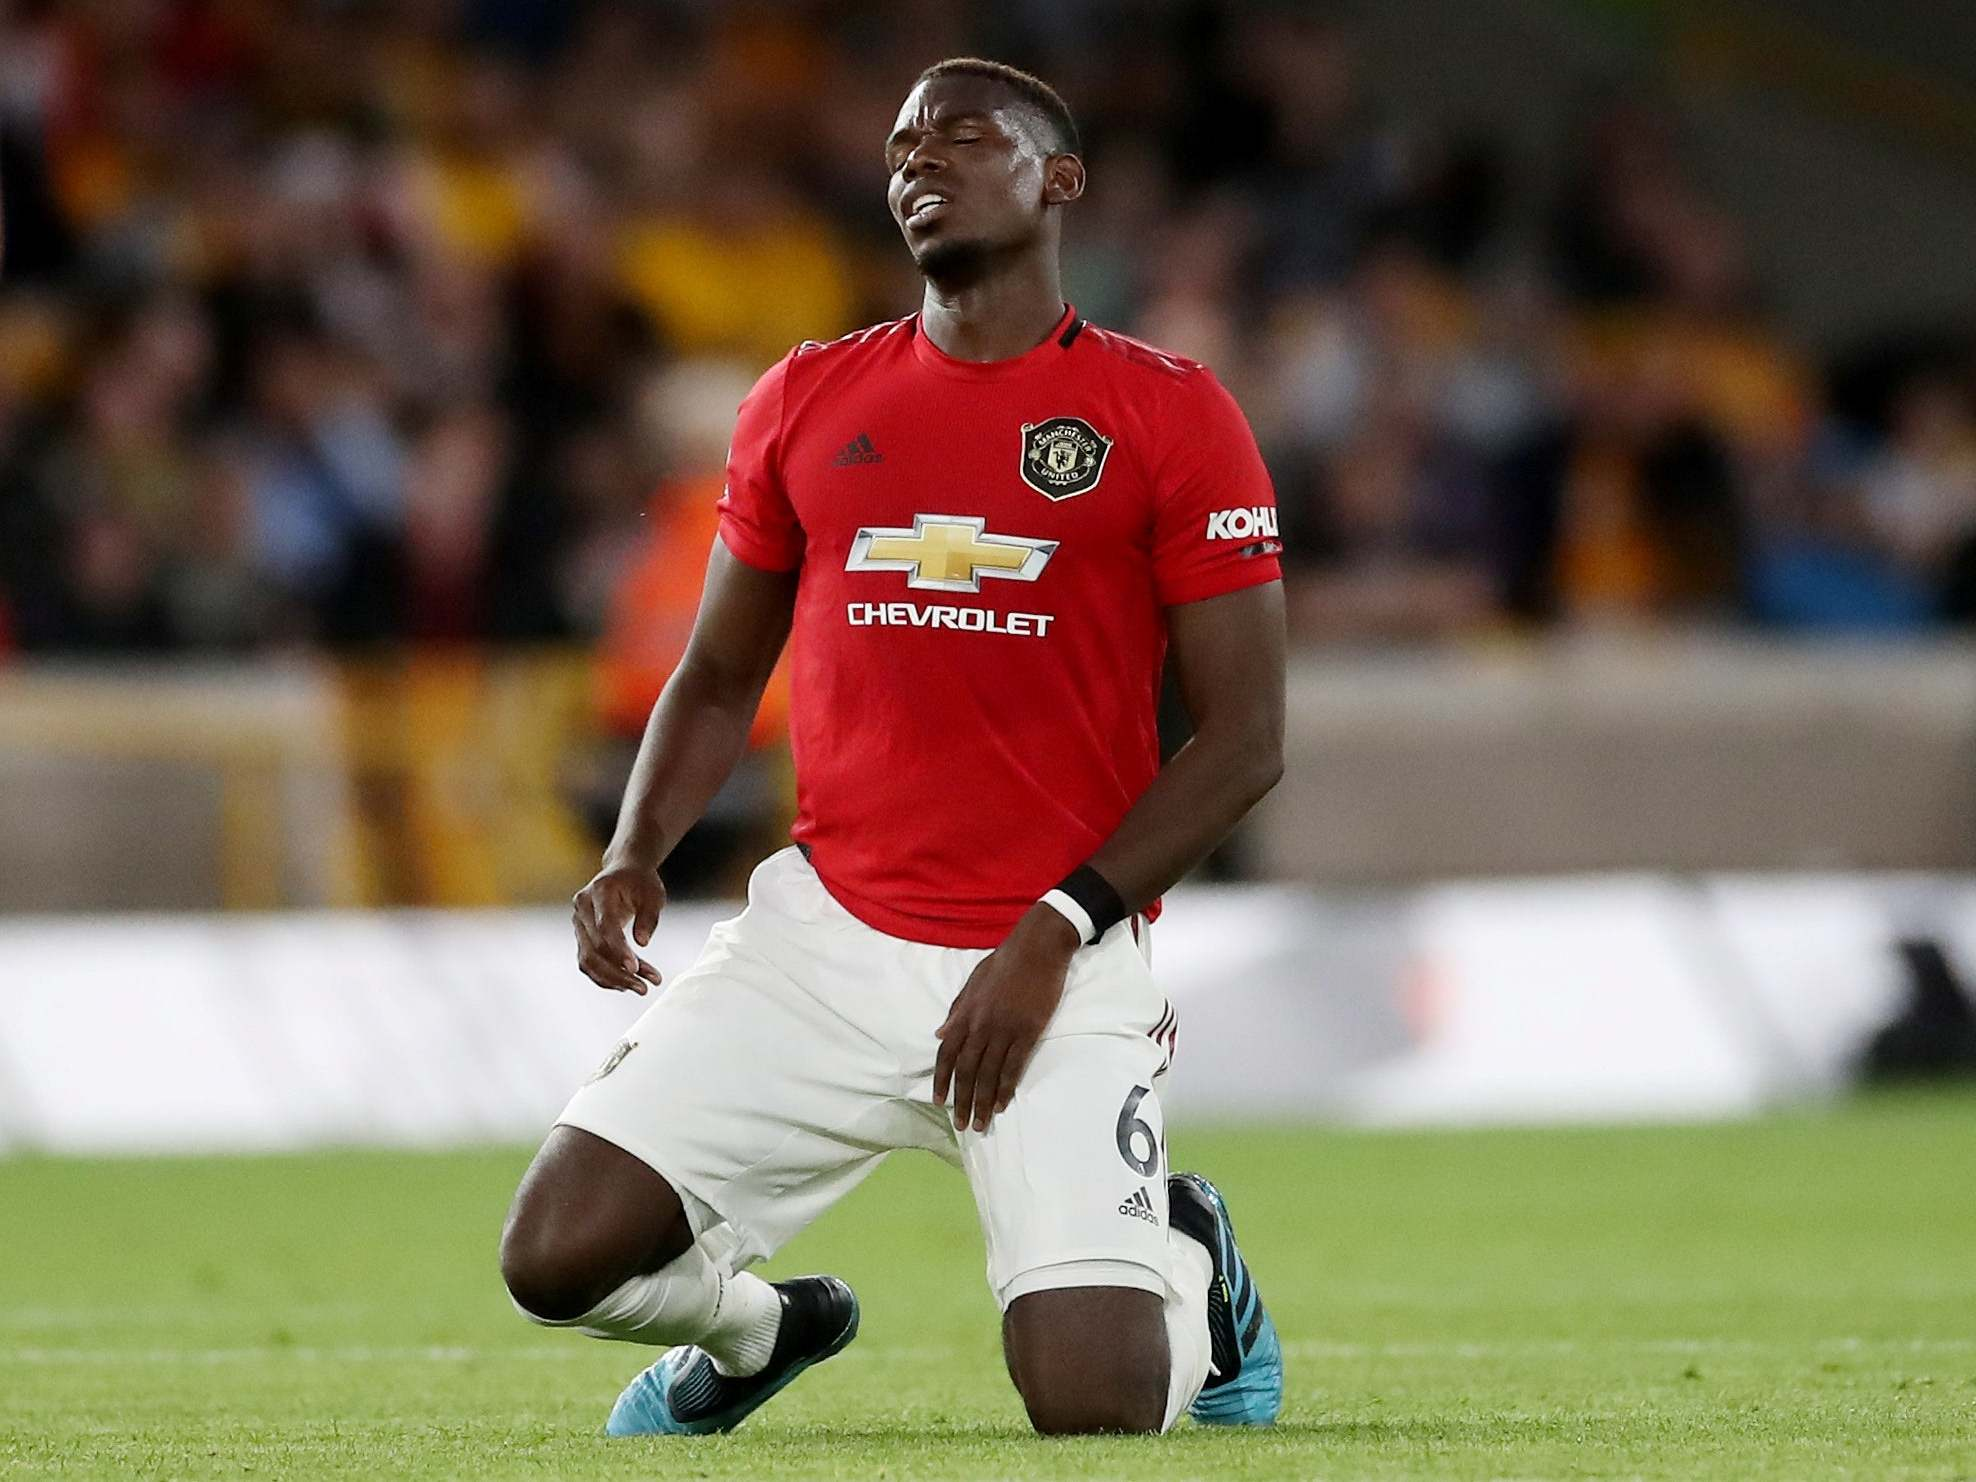 Wolves vs Manchester United LIVE: Stream, score, goals, latest updates and team news